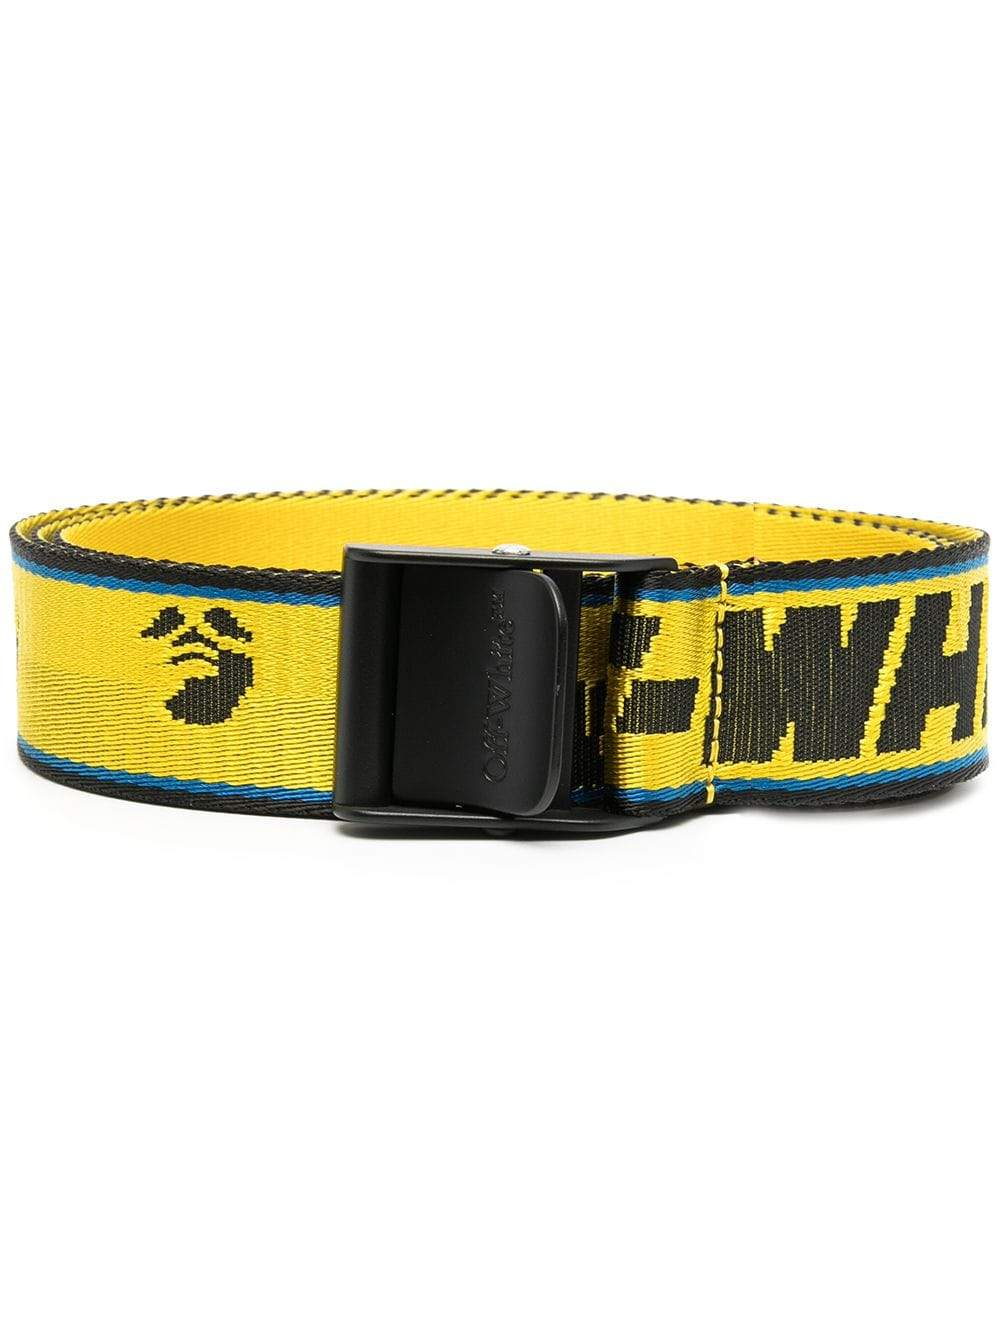 Off-White Women's Industrial Belt Yellow/Blue - Maison De Fashion